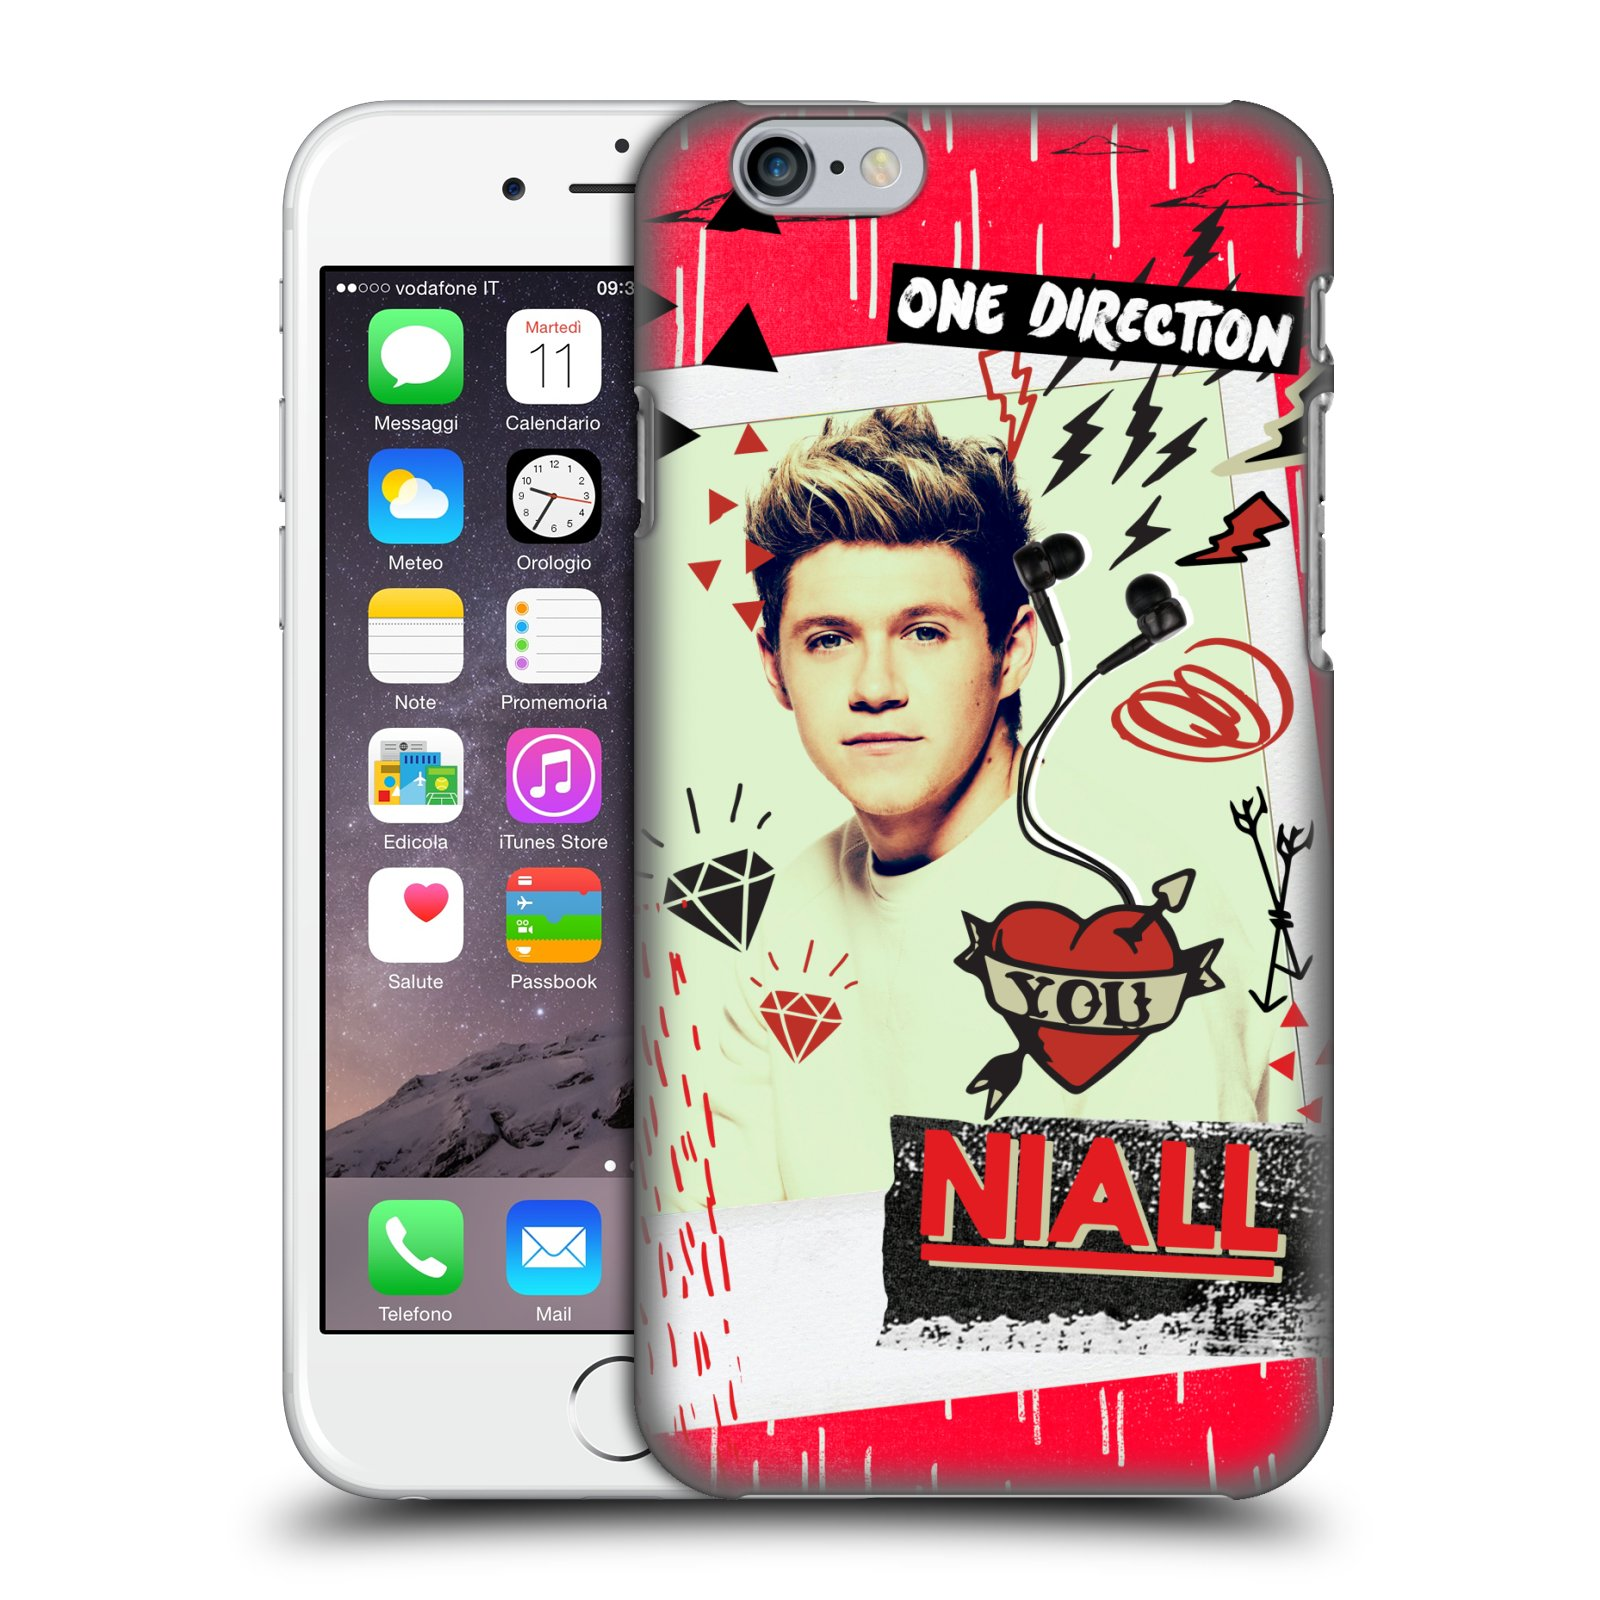 ONE-DIRECTION-1D-OFFIZIELL-SCHNAPPSCHUSS-CASE-FUR-APPLE-iPHONE-PHONES